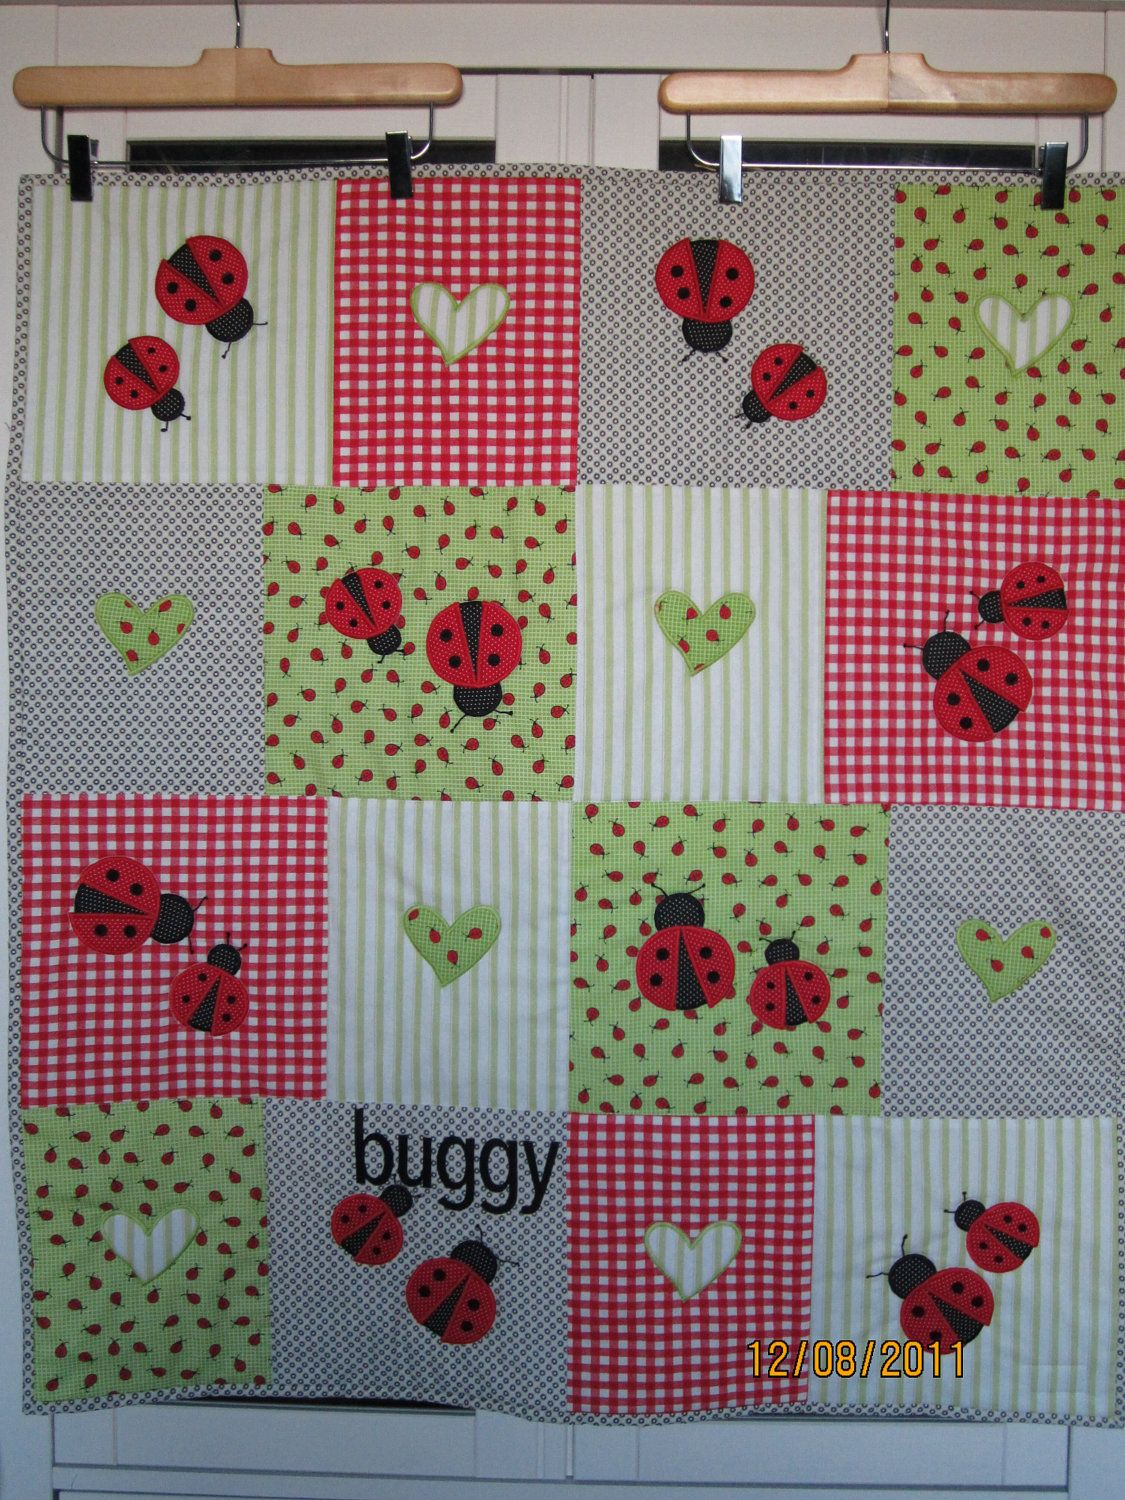 Ladybug Quilt Baby Quilts Cute Quilts Animal Quilts